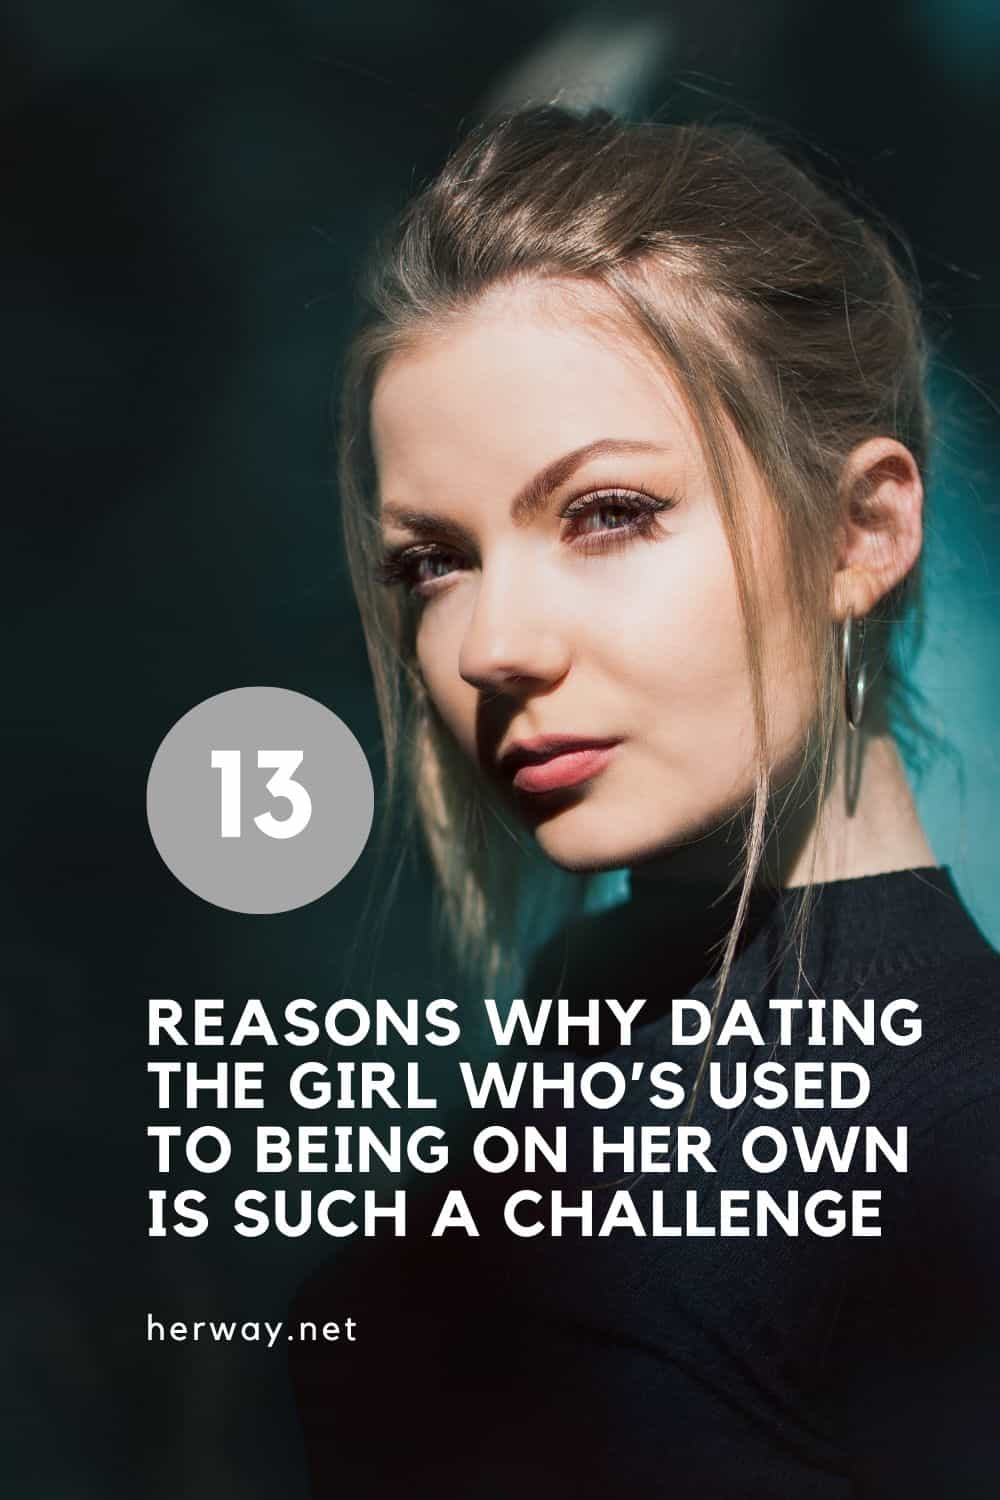 13 REASONS WHY DATING THE GIRL WHO'S USED TO BEING ON HER OWN IS SUCH A CHALLENGE